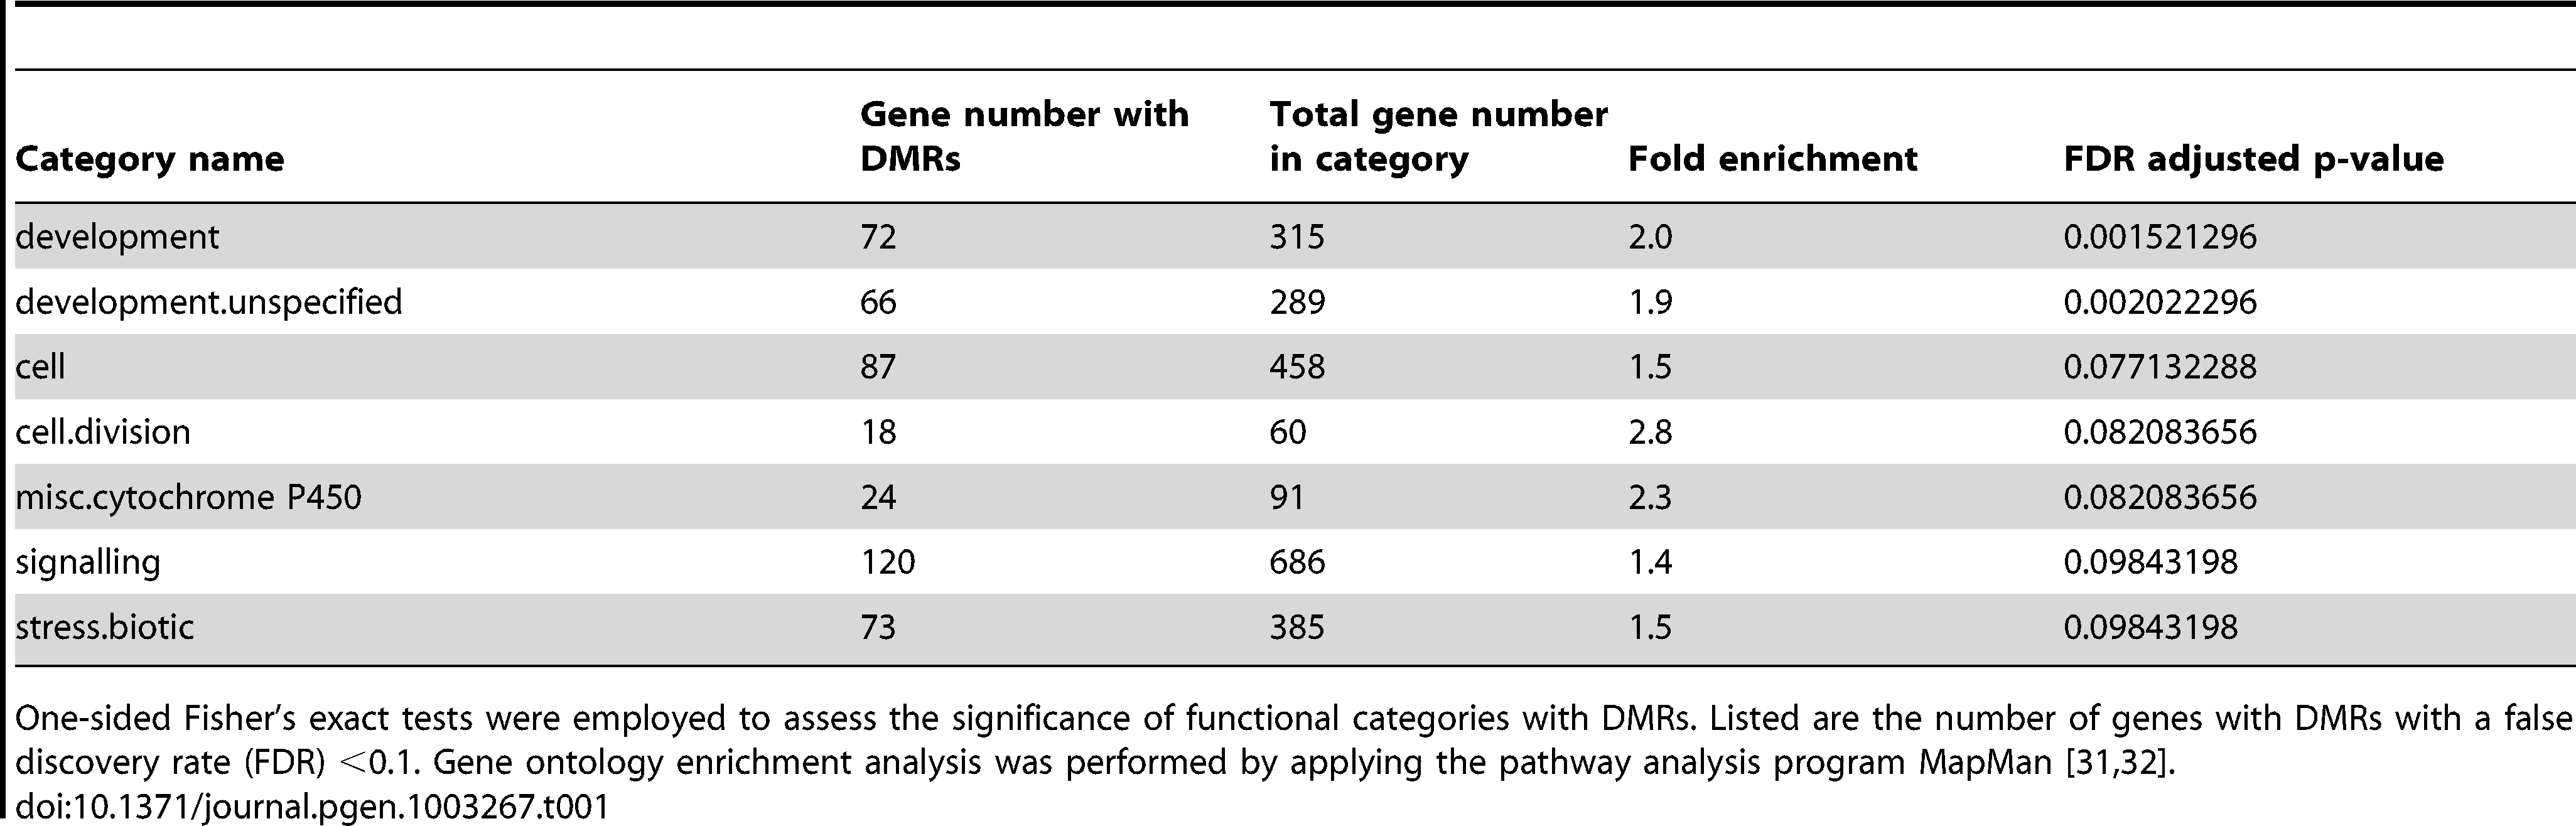 Enrichment of protein coding genes with differentially methylated regions (DMRs) in functional categories.